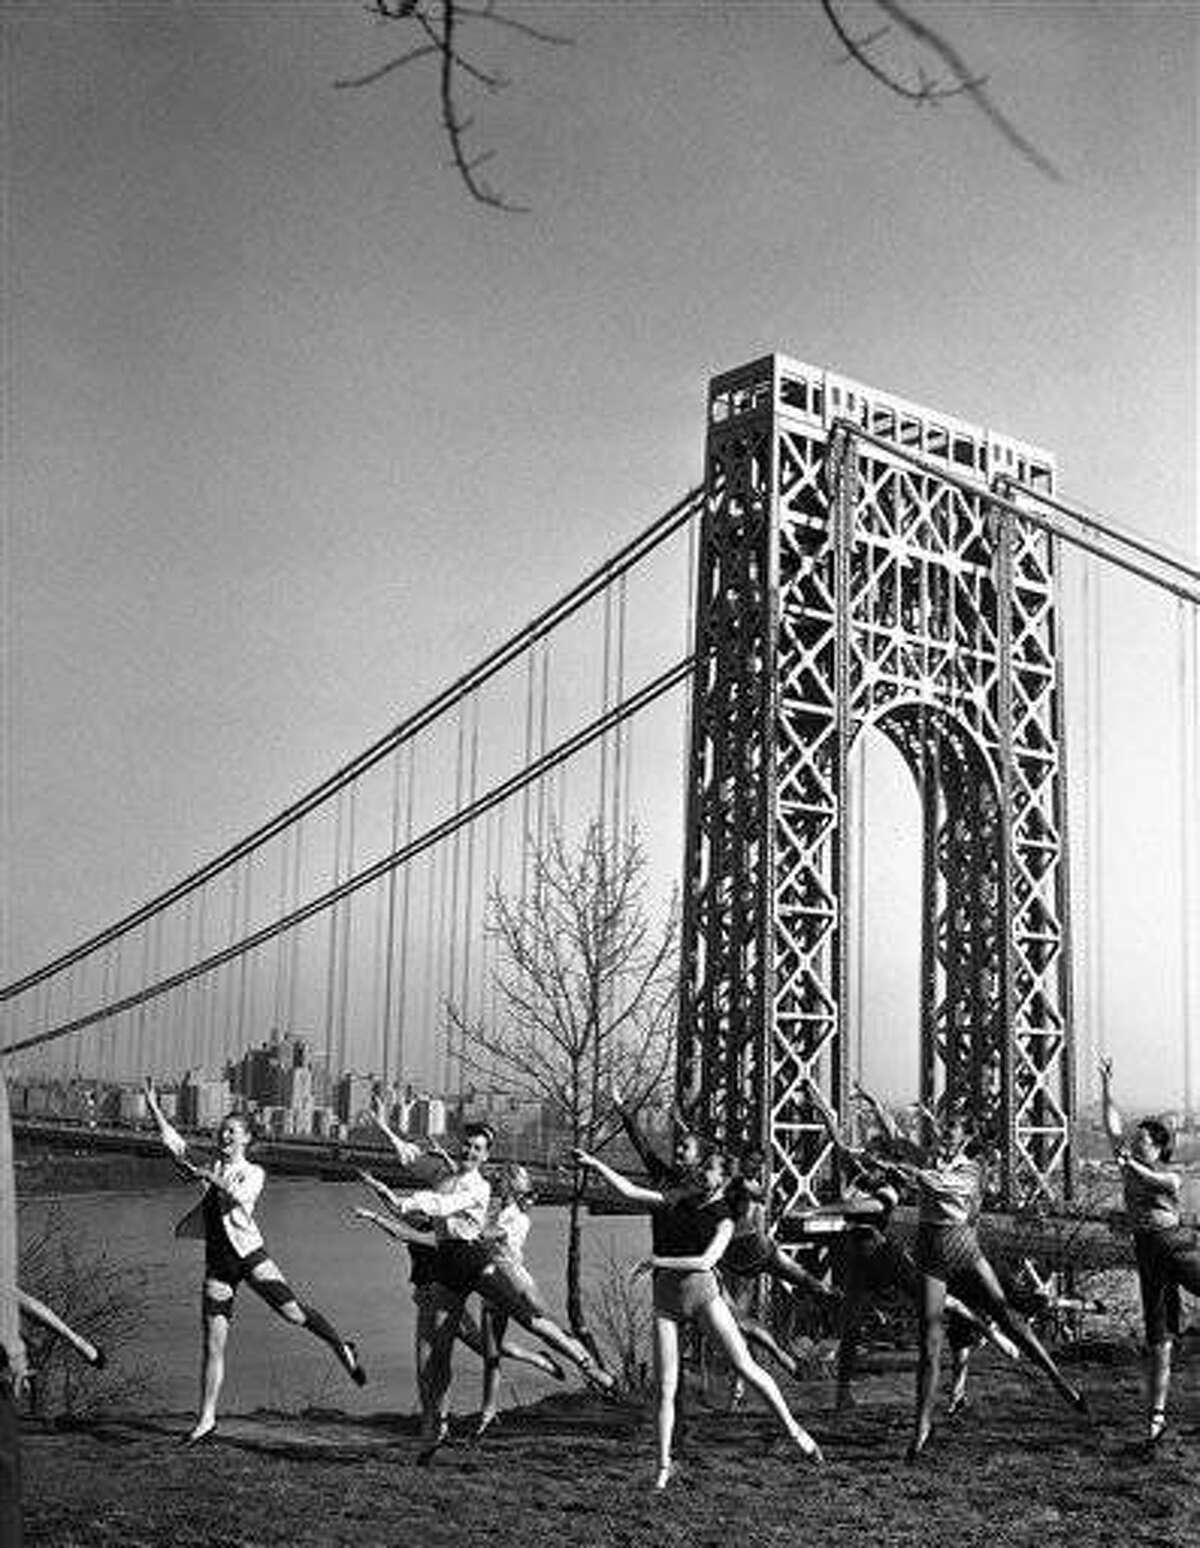 After hours of indoor practice, dancers from a New Jersey nightclub come outdoors to carry on their rehearsal in the spring air on the Jersey side of the George Washington Bridge, April 24, 1951. In the background is the bridge and the view of Manhattan looking north up the Hudson River, as they go through their routine on the Palisades Cliffs adjacent to the club, Bill Millers Rendezvous, in preparation for the opening next month. (AP Photo/Robert Kradin)